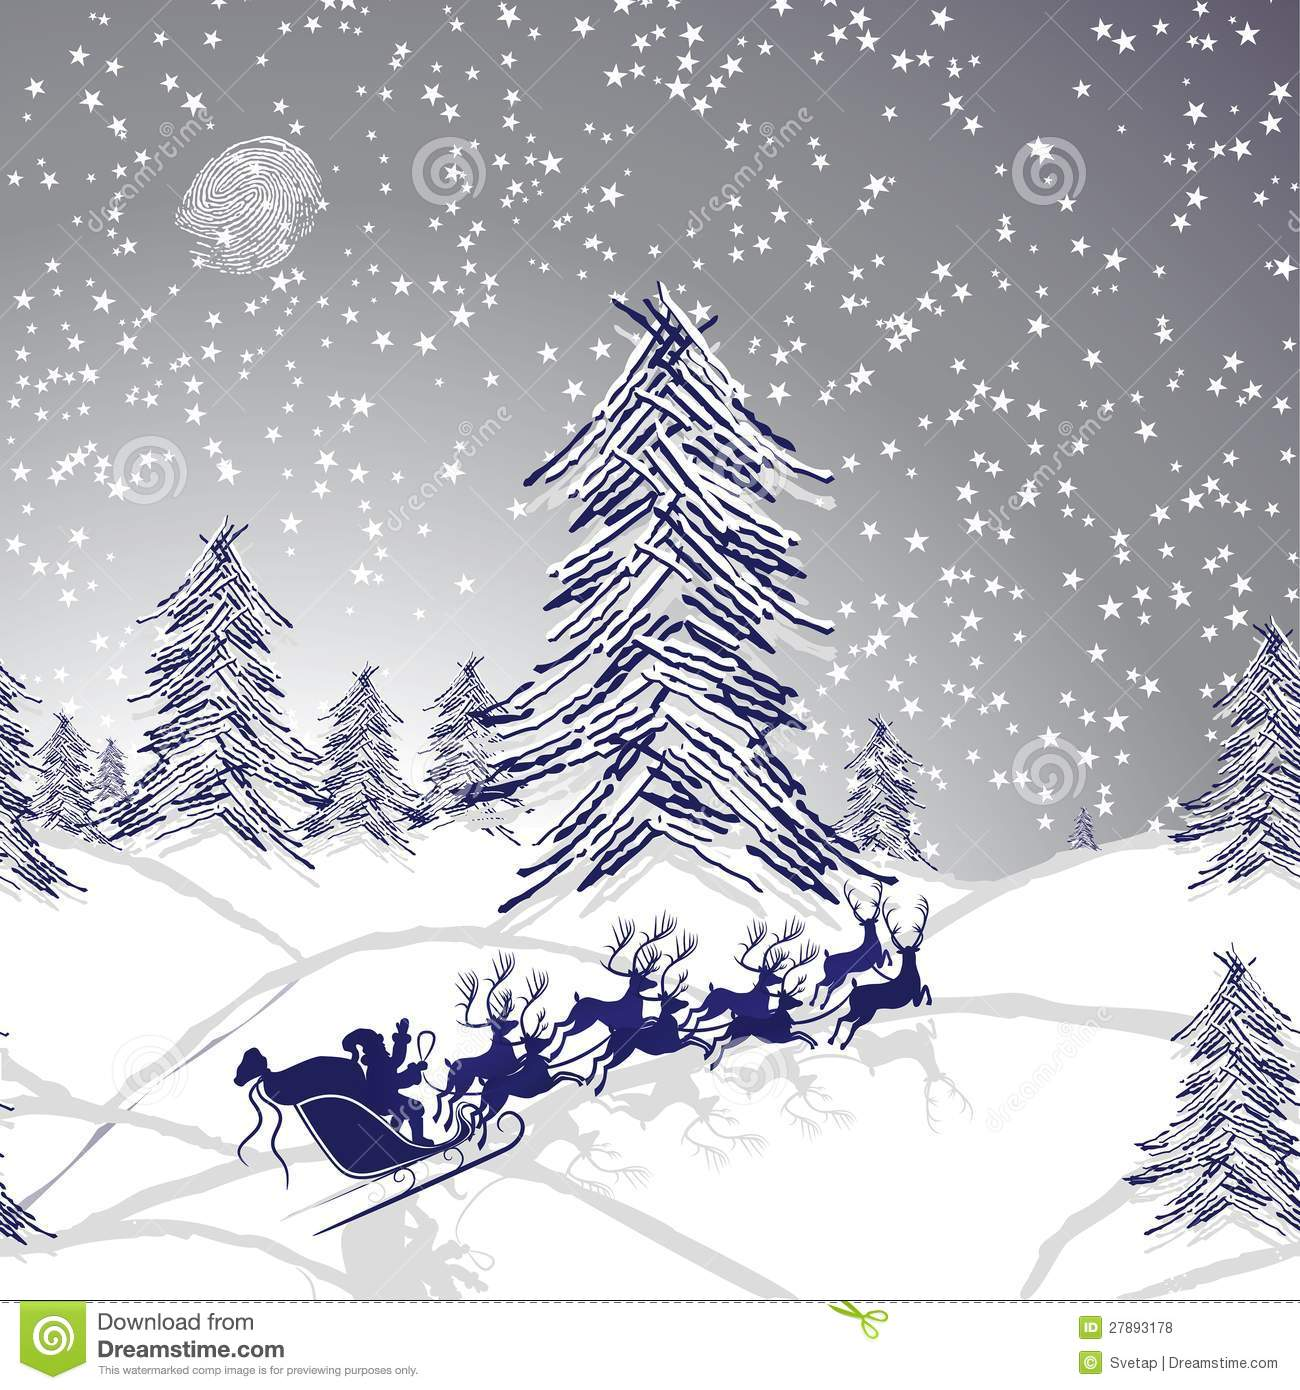 Winter christmas landscape royalty free stock photos for Christmas landscape images